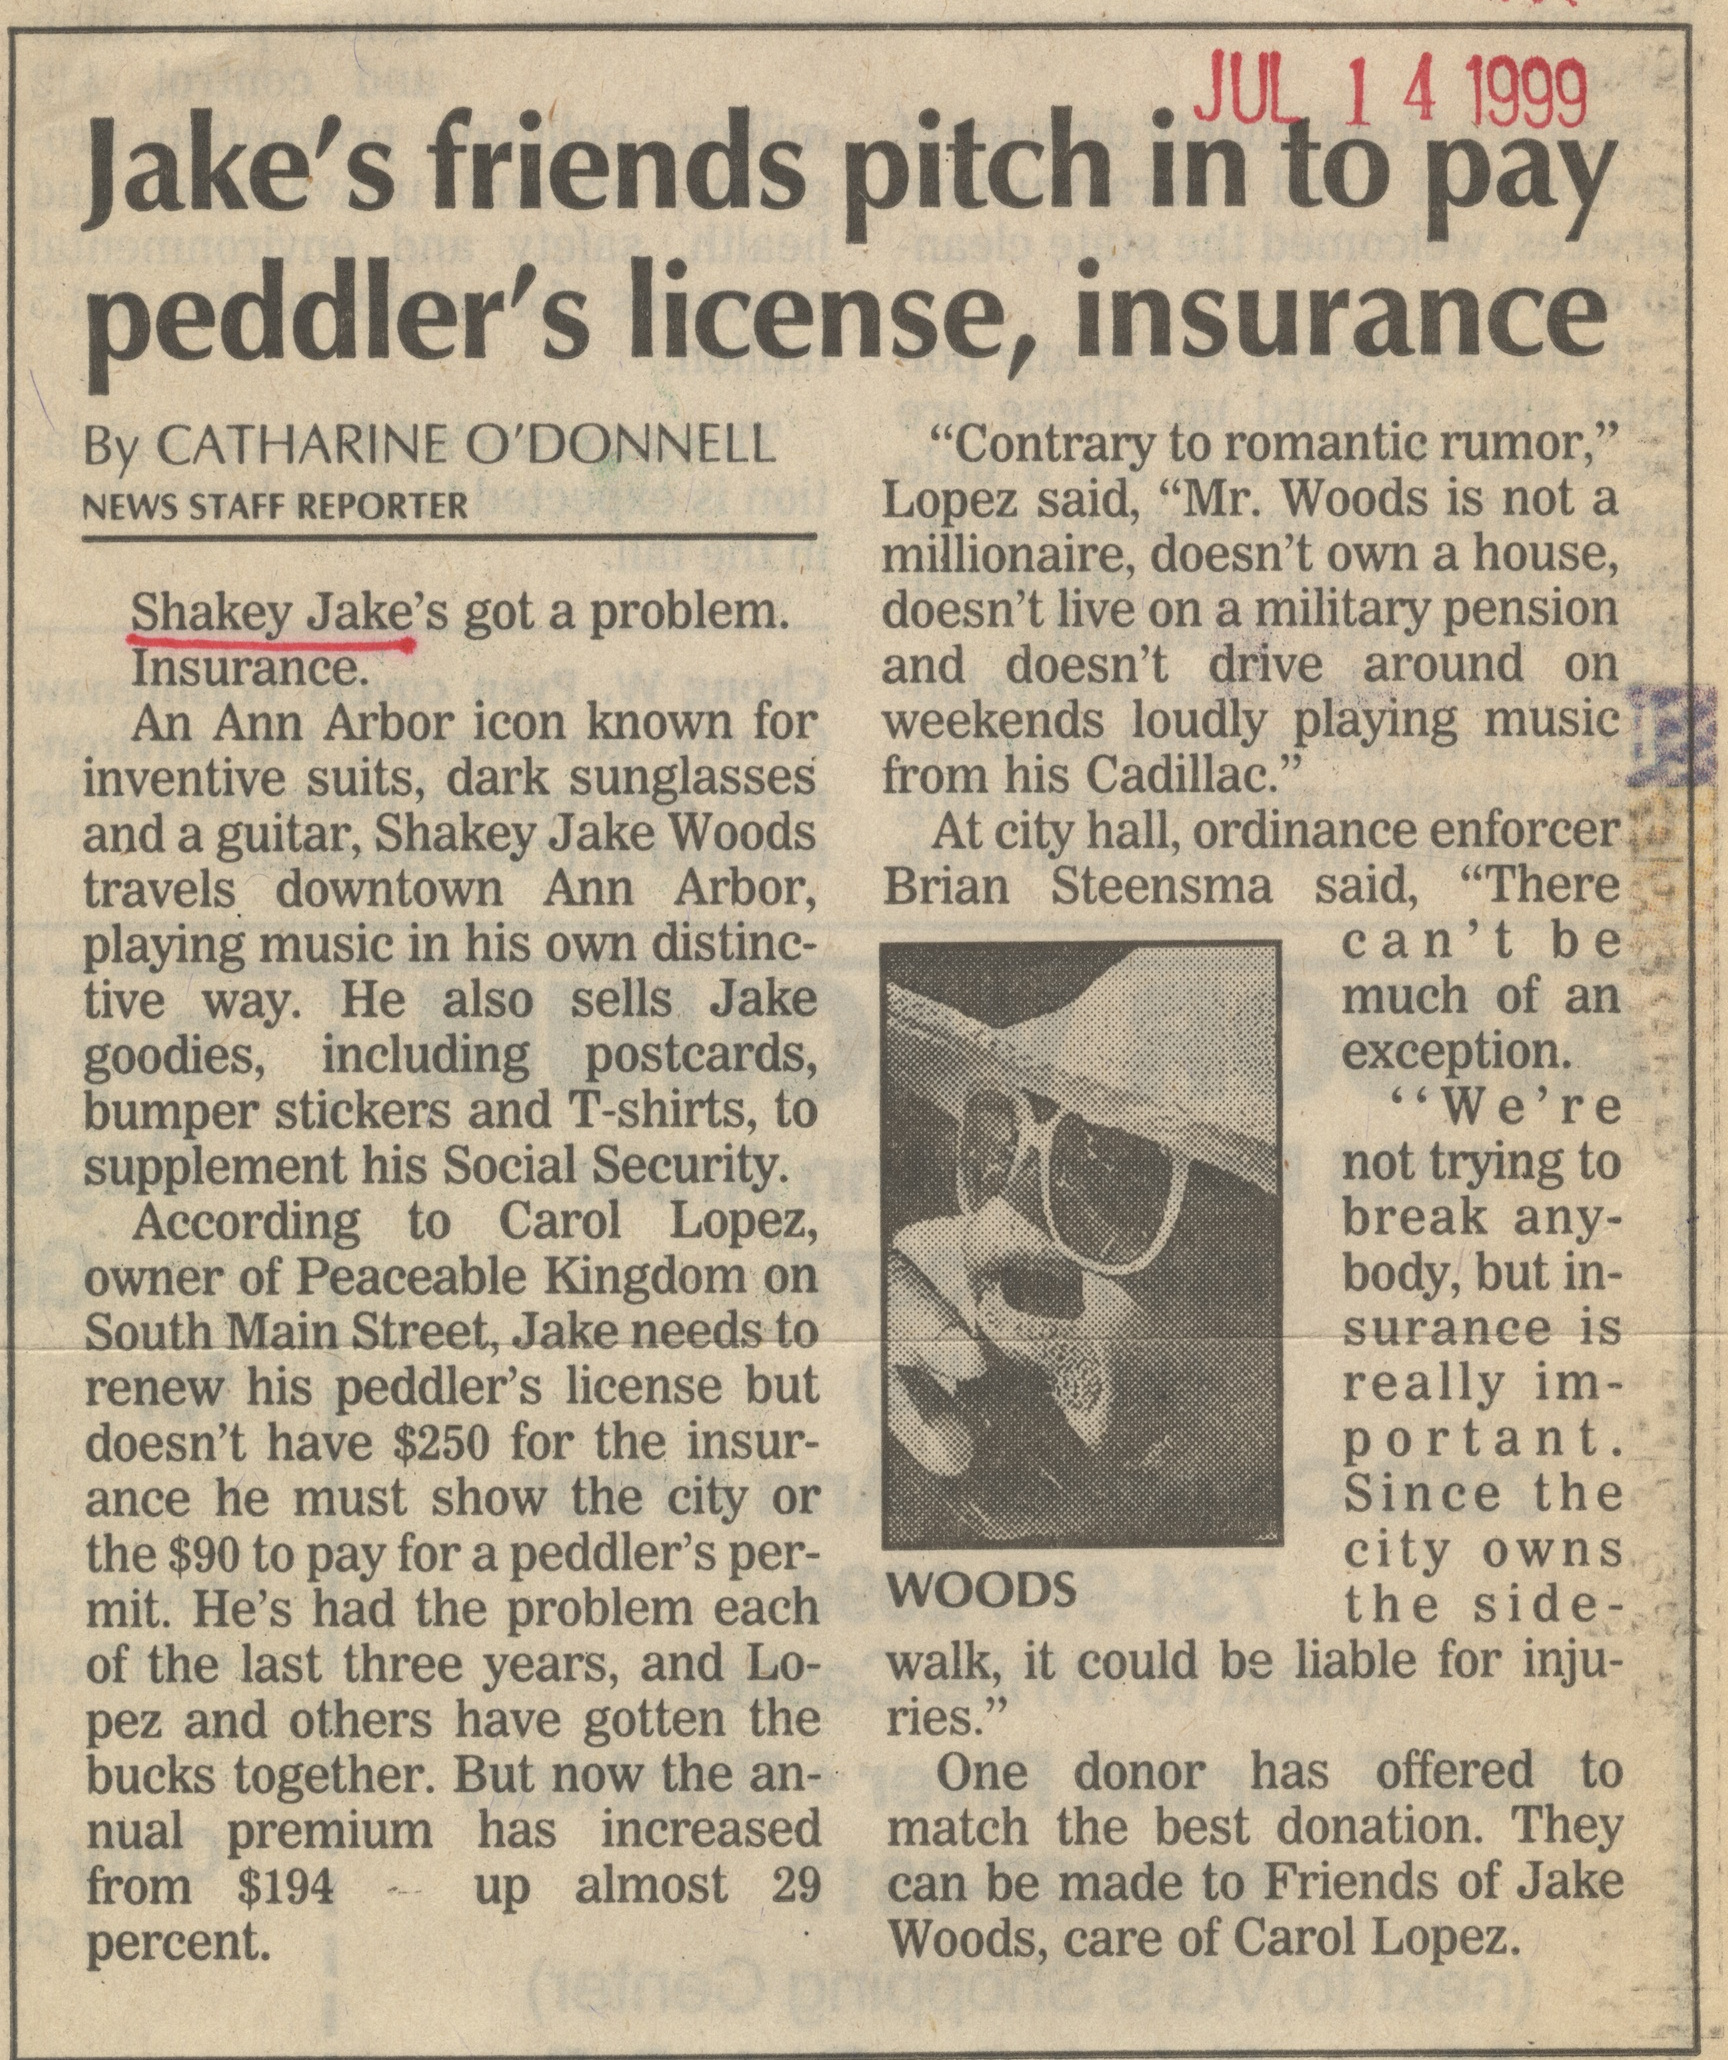 Jake's Friends Pitch In To Pay Peddler's License, Insurance image